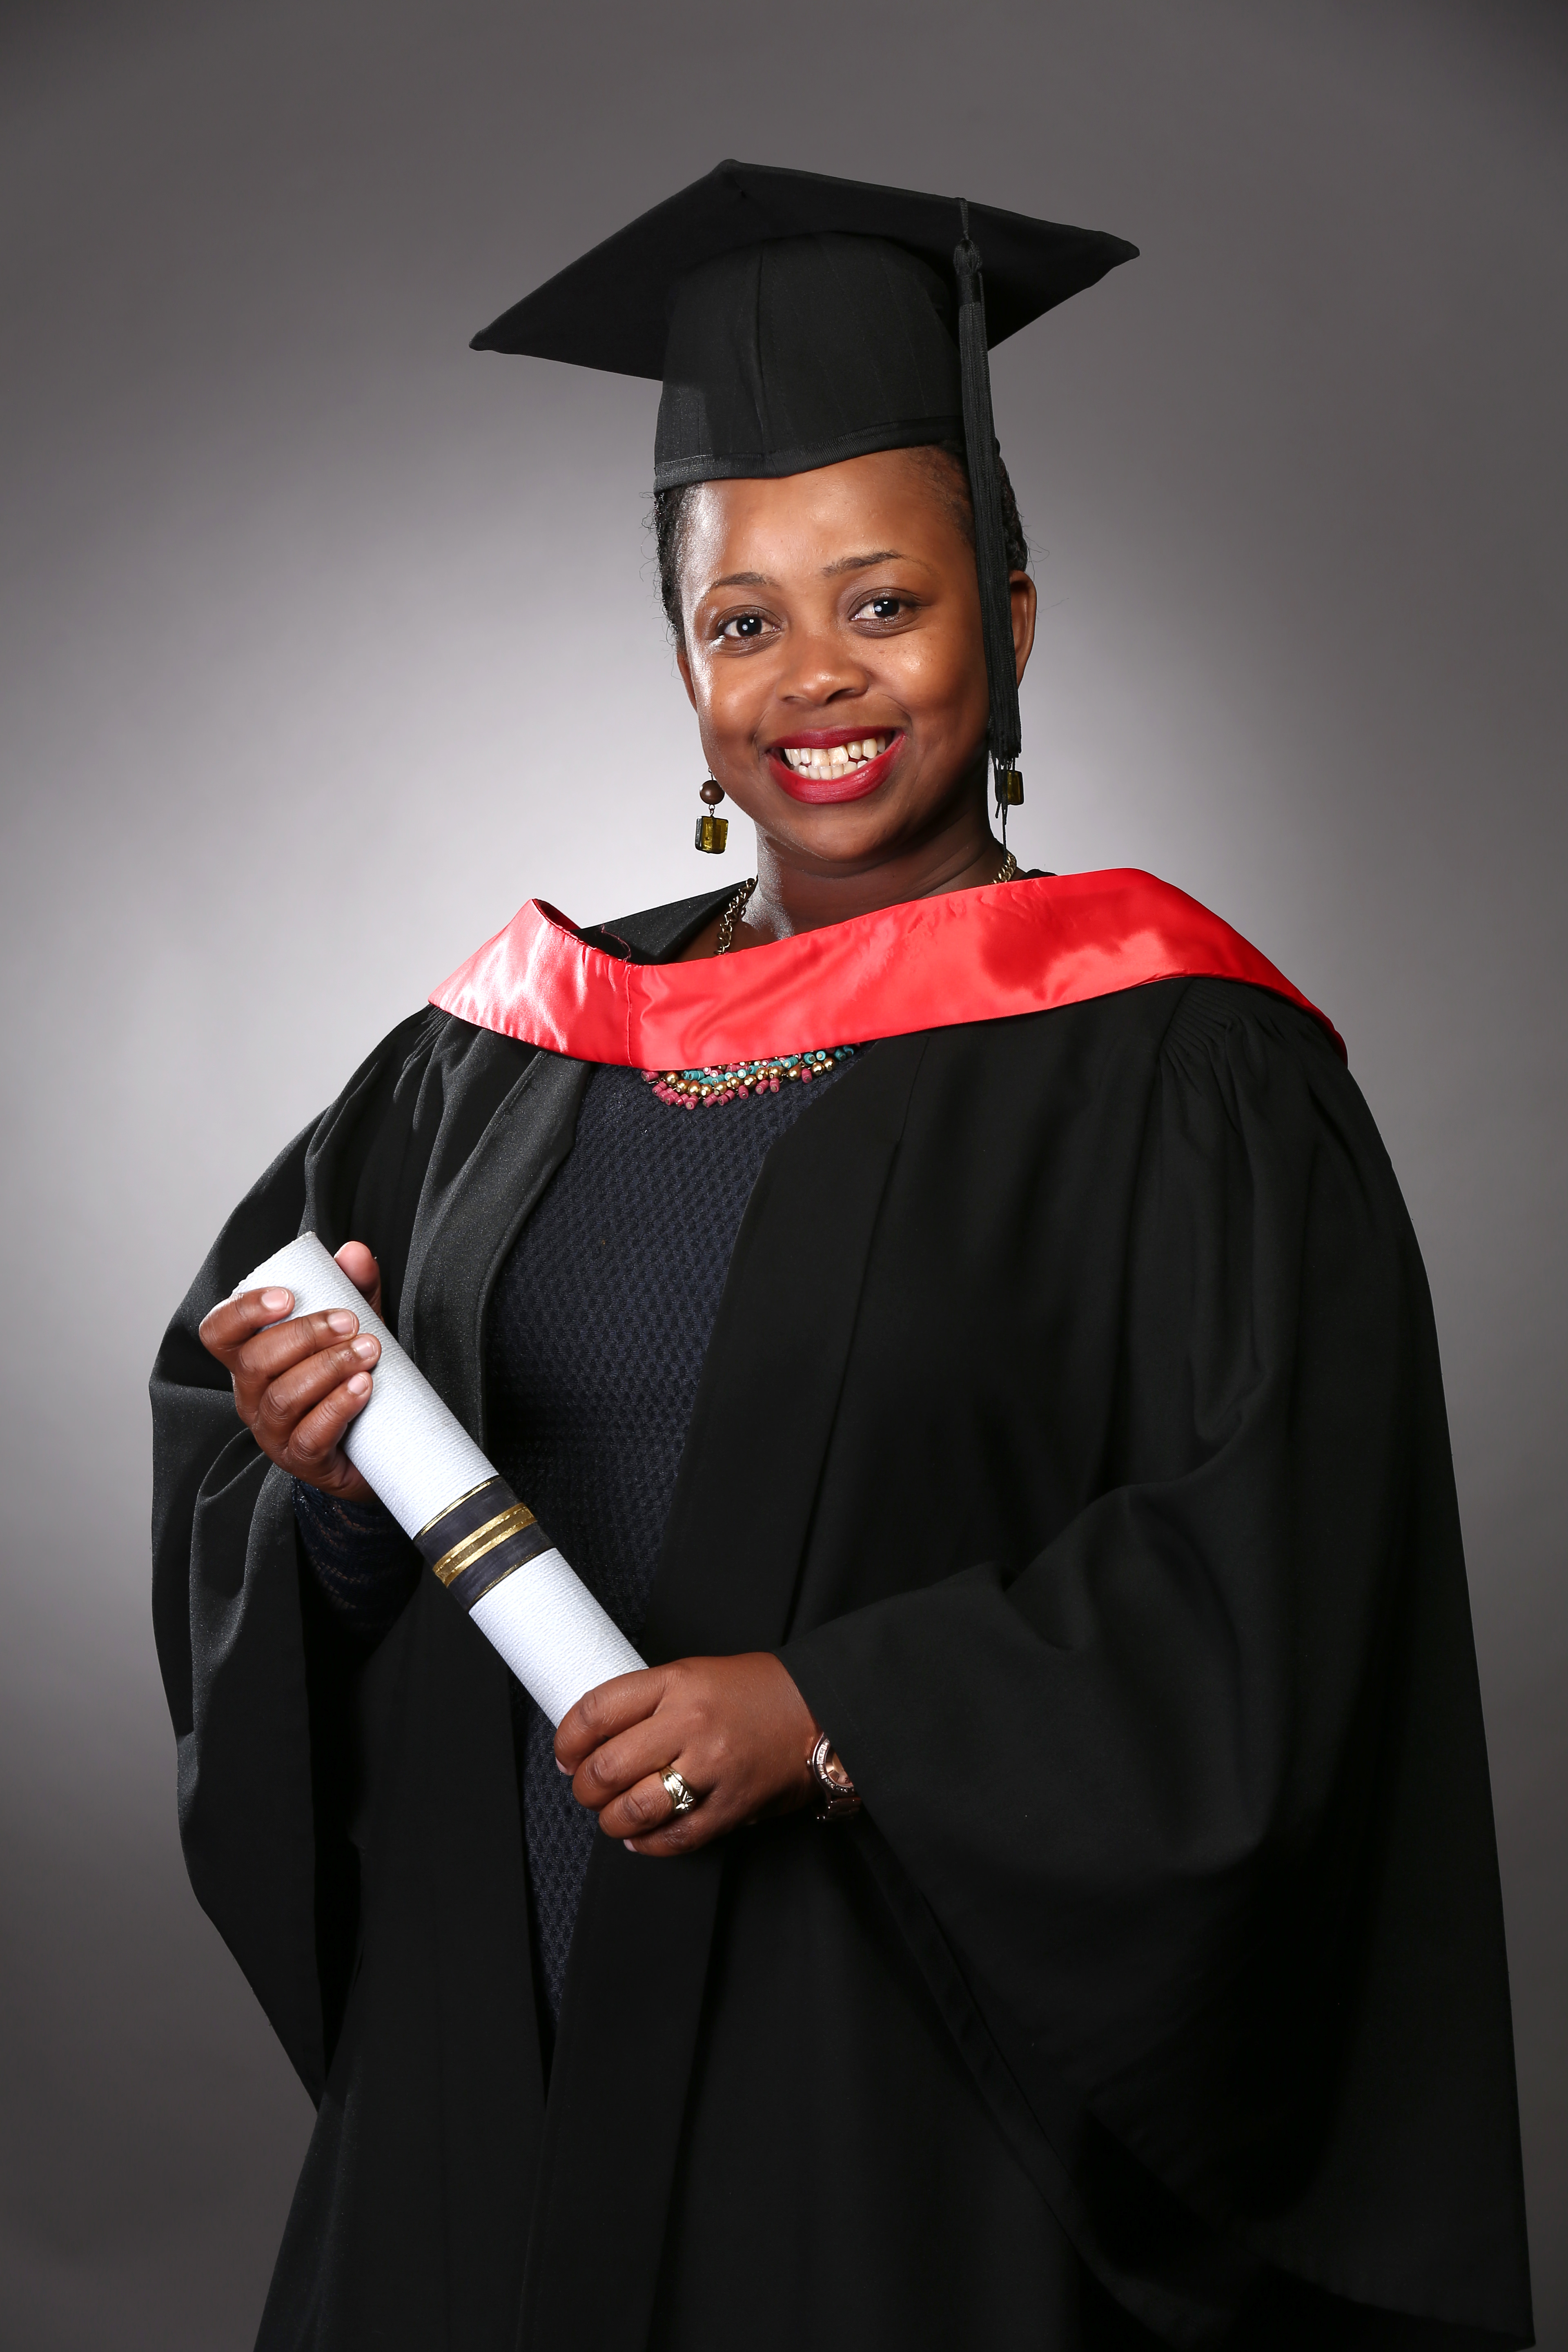 Graduation portraiture, female